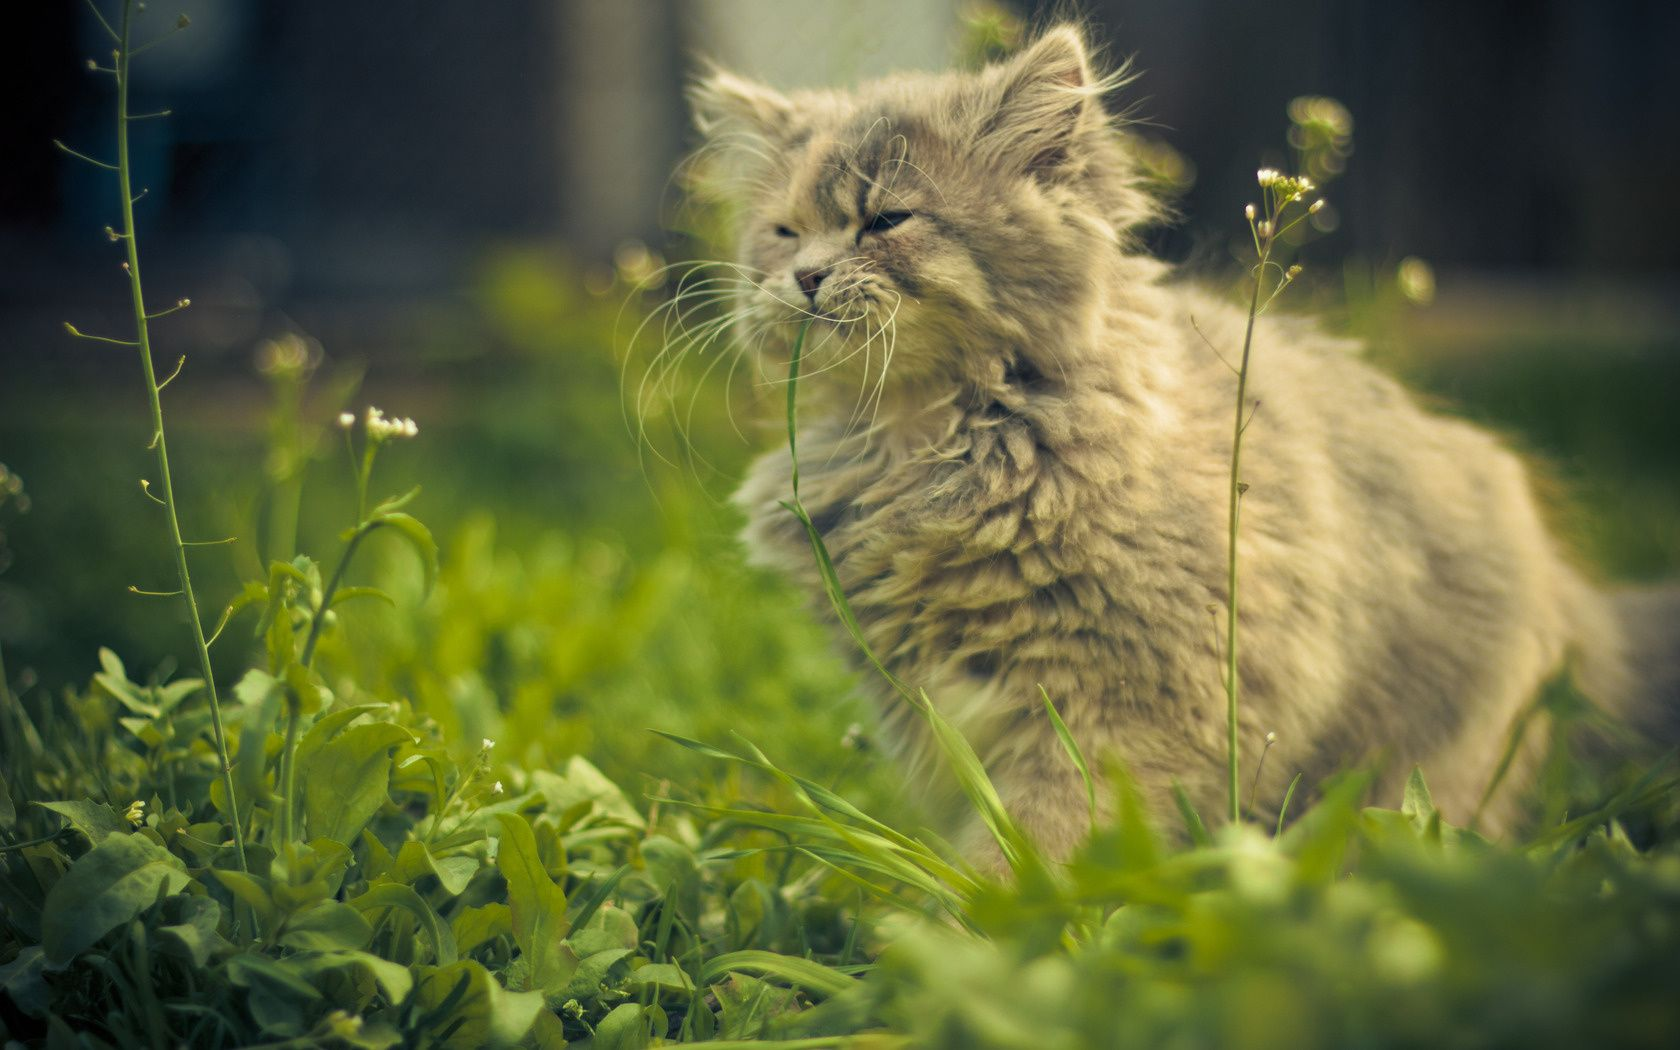 Grass Is Important For A Cat S Digestive System If You Don T Have A Garden This Can Be Grown Indoors For The Cat To Munch Kitten Wallpaper Cats Kittens Funny